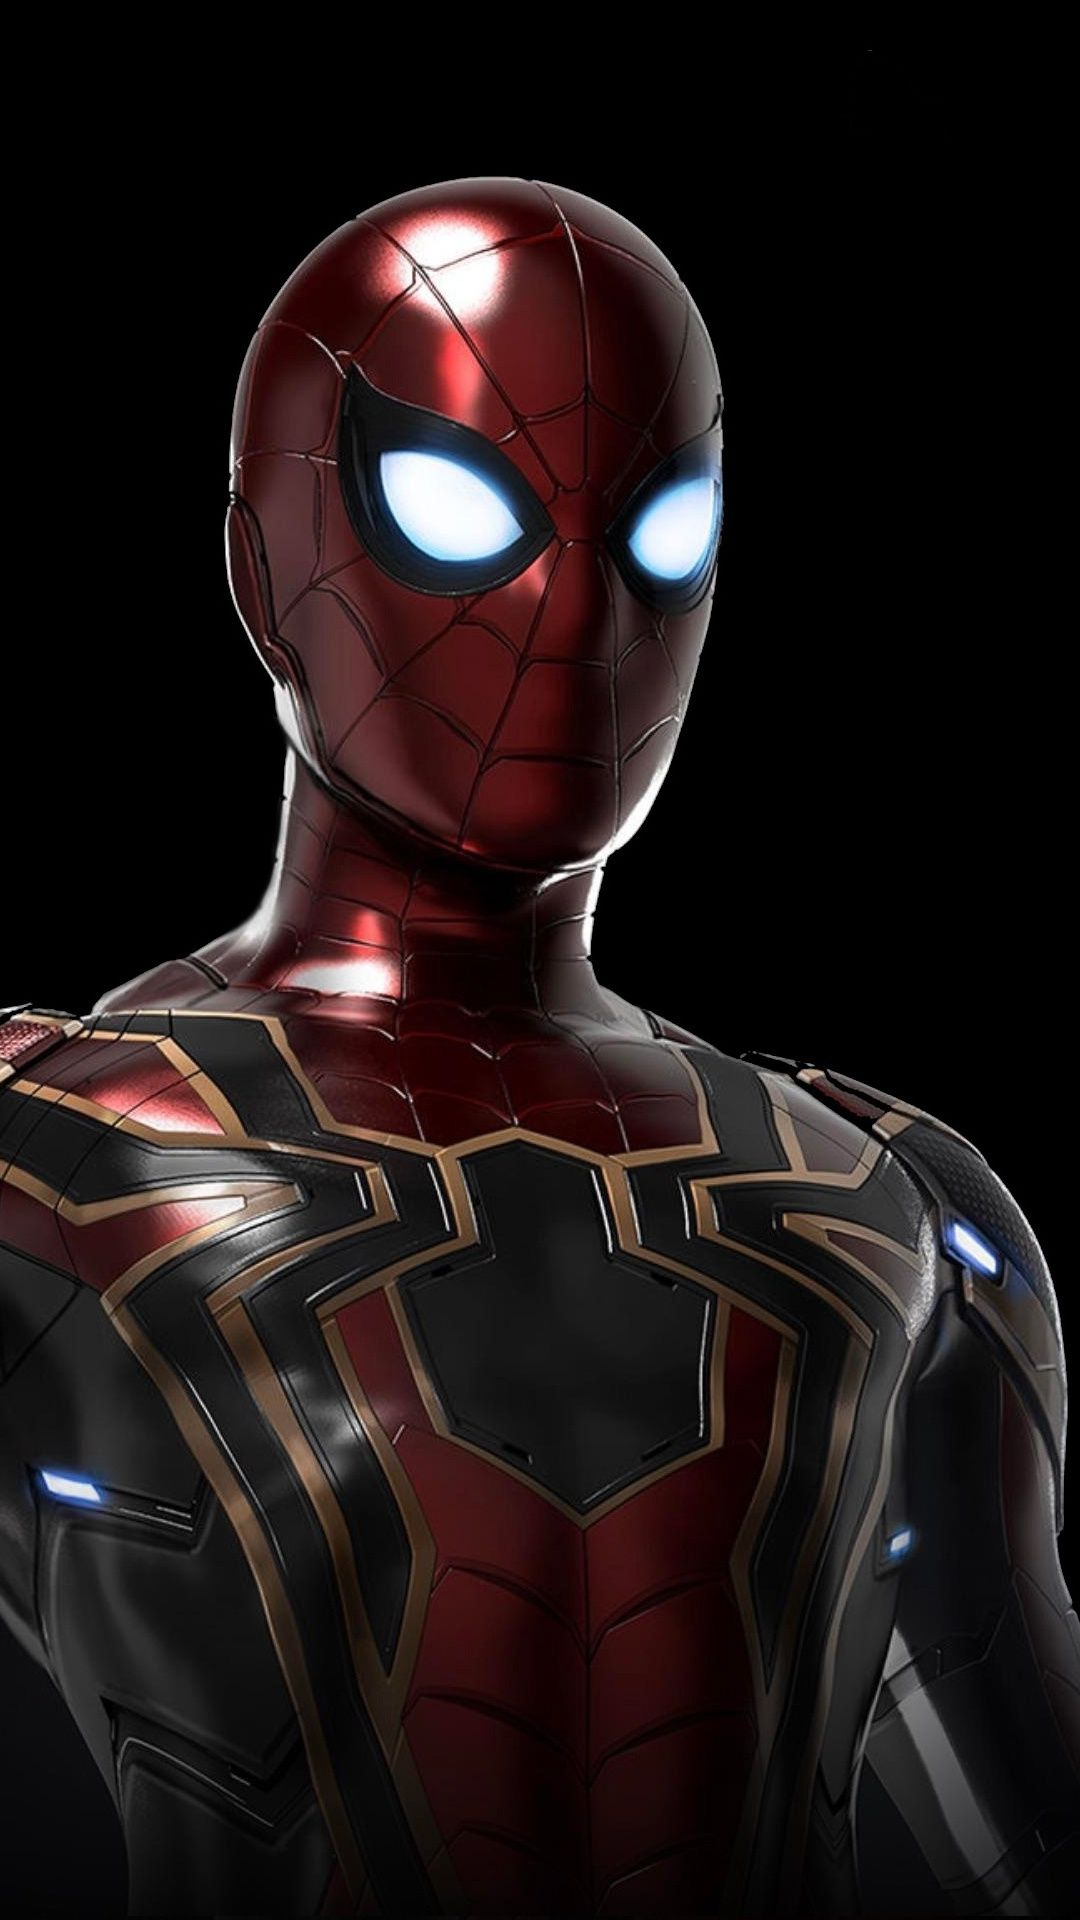 Iron Spider Avengers Infinity War Movie Artwork 1080x1920